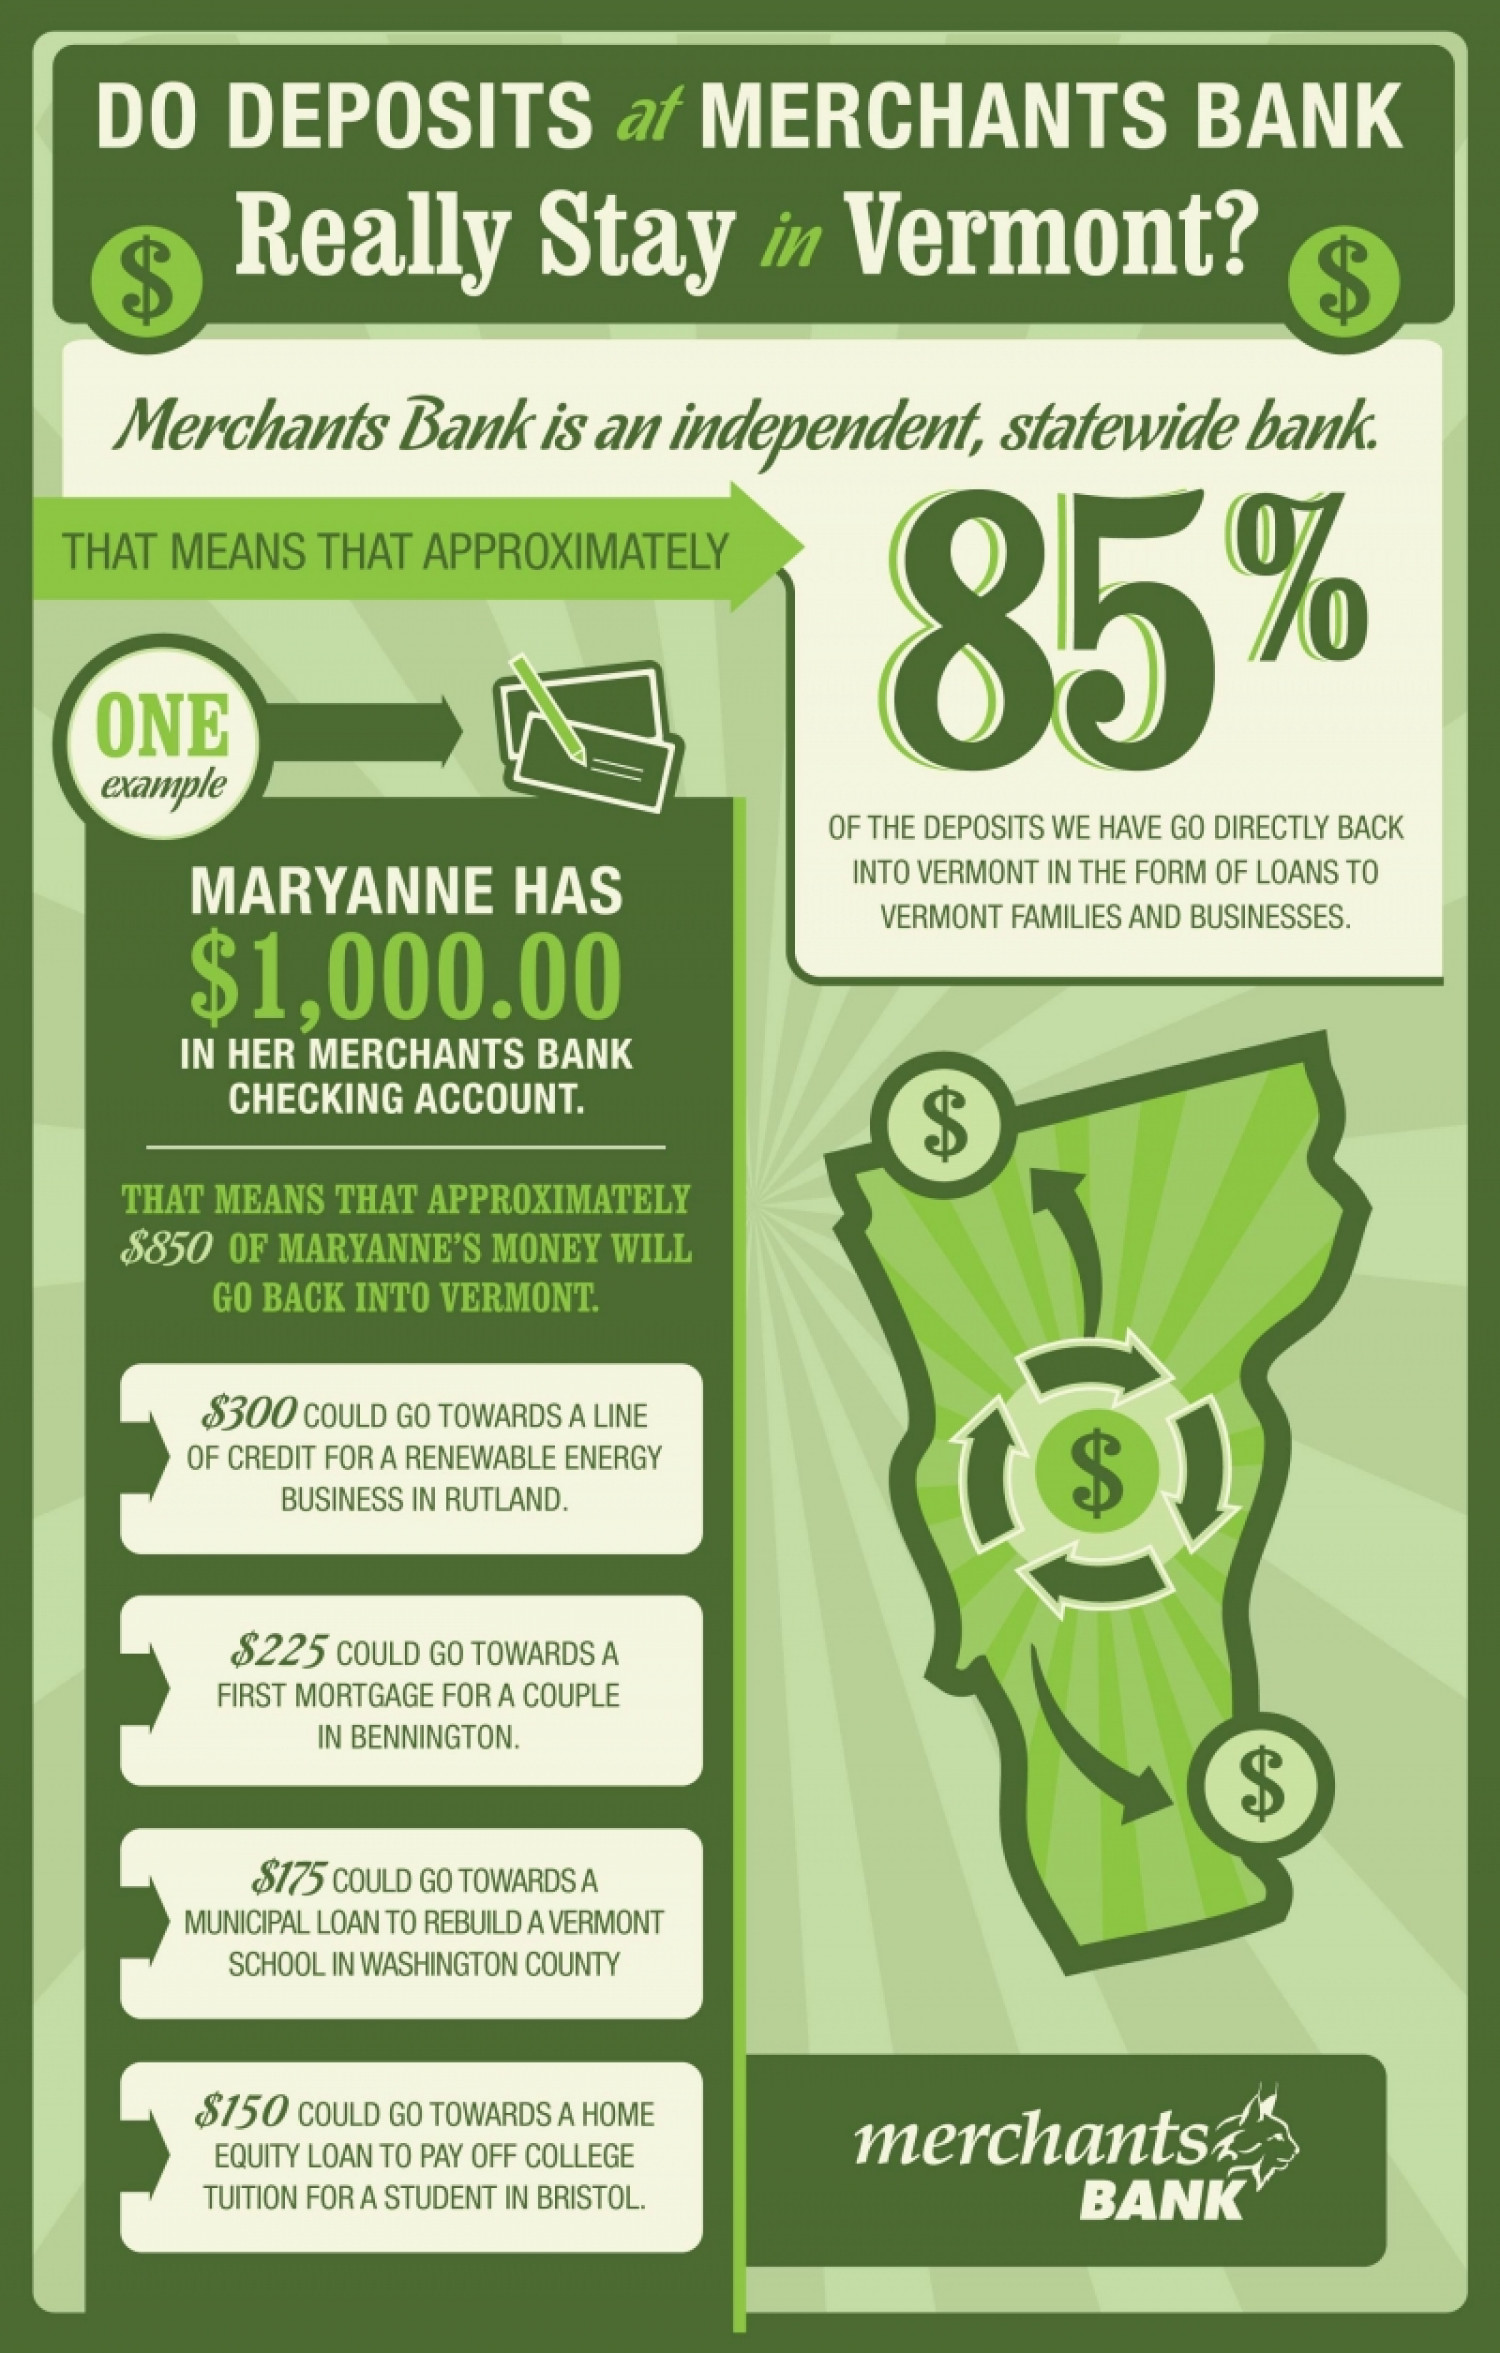 Do Deposits at Merchants Bank Really Stay in Vermont? Infographic